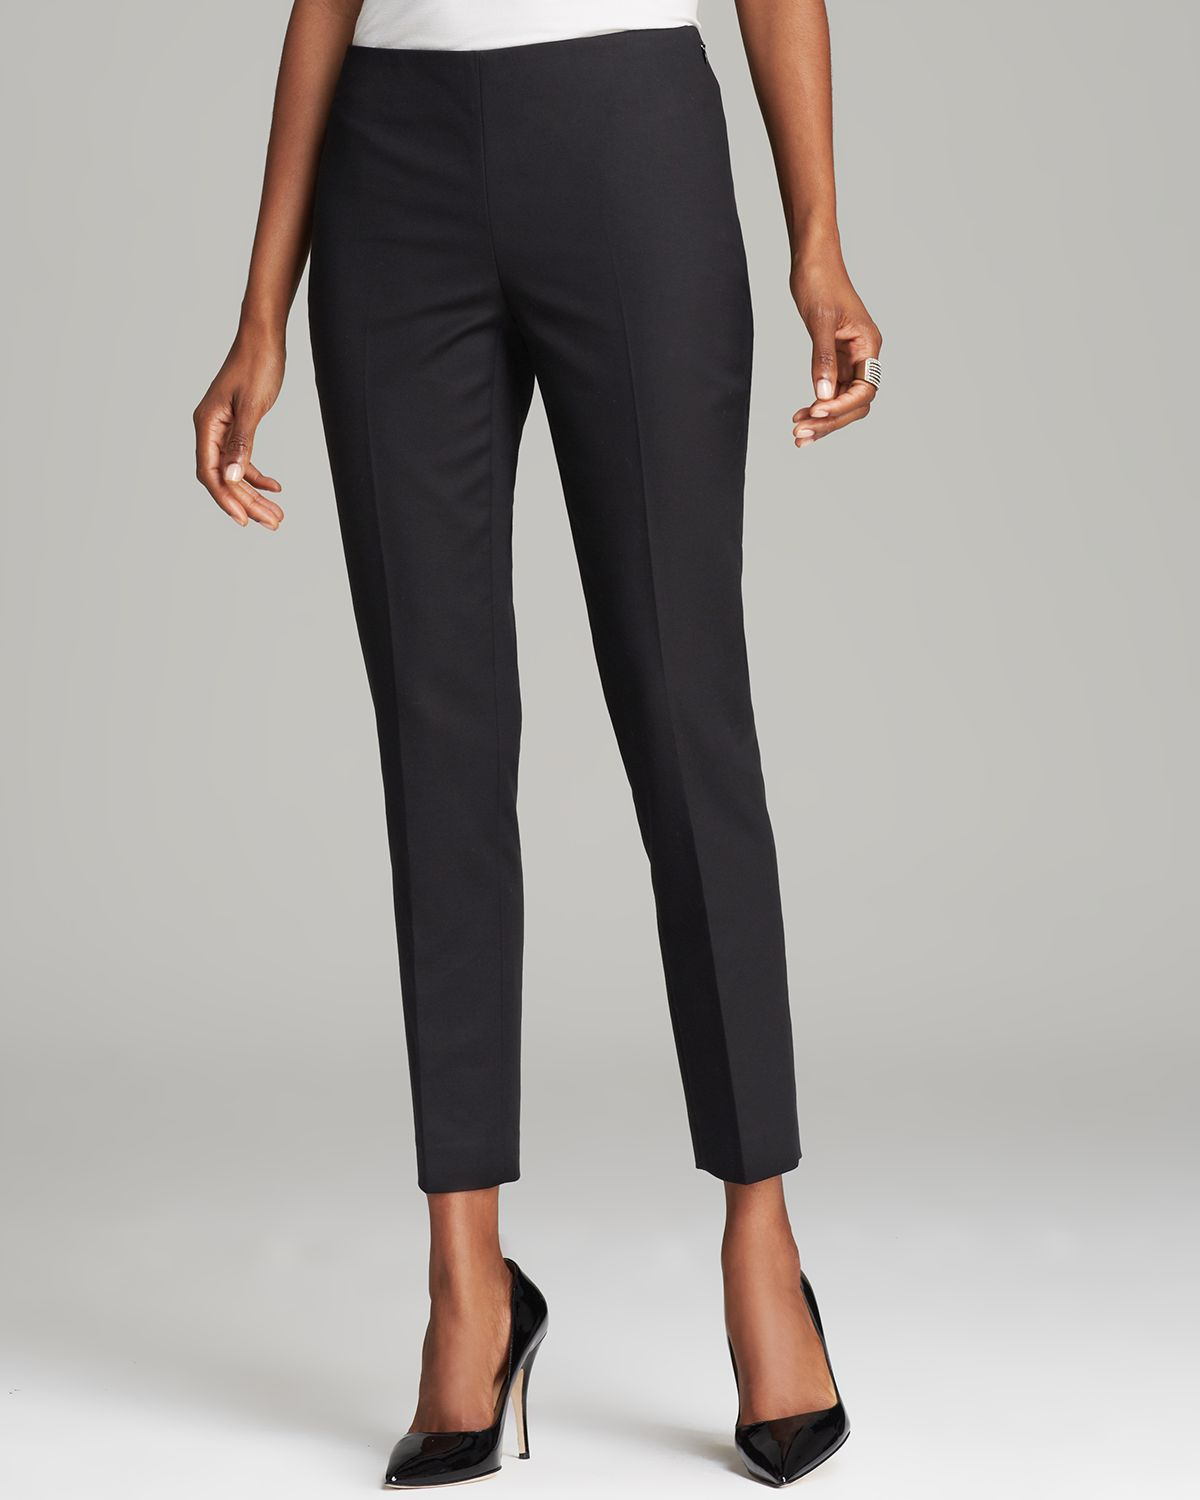 More Details Anatomie Thea Straight-Leg Ankle-Length Pants w/ Side Zip Pockets Details Anatomie